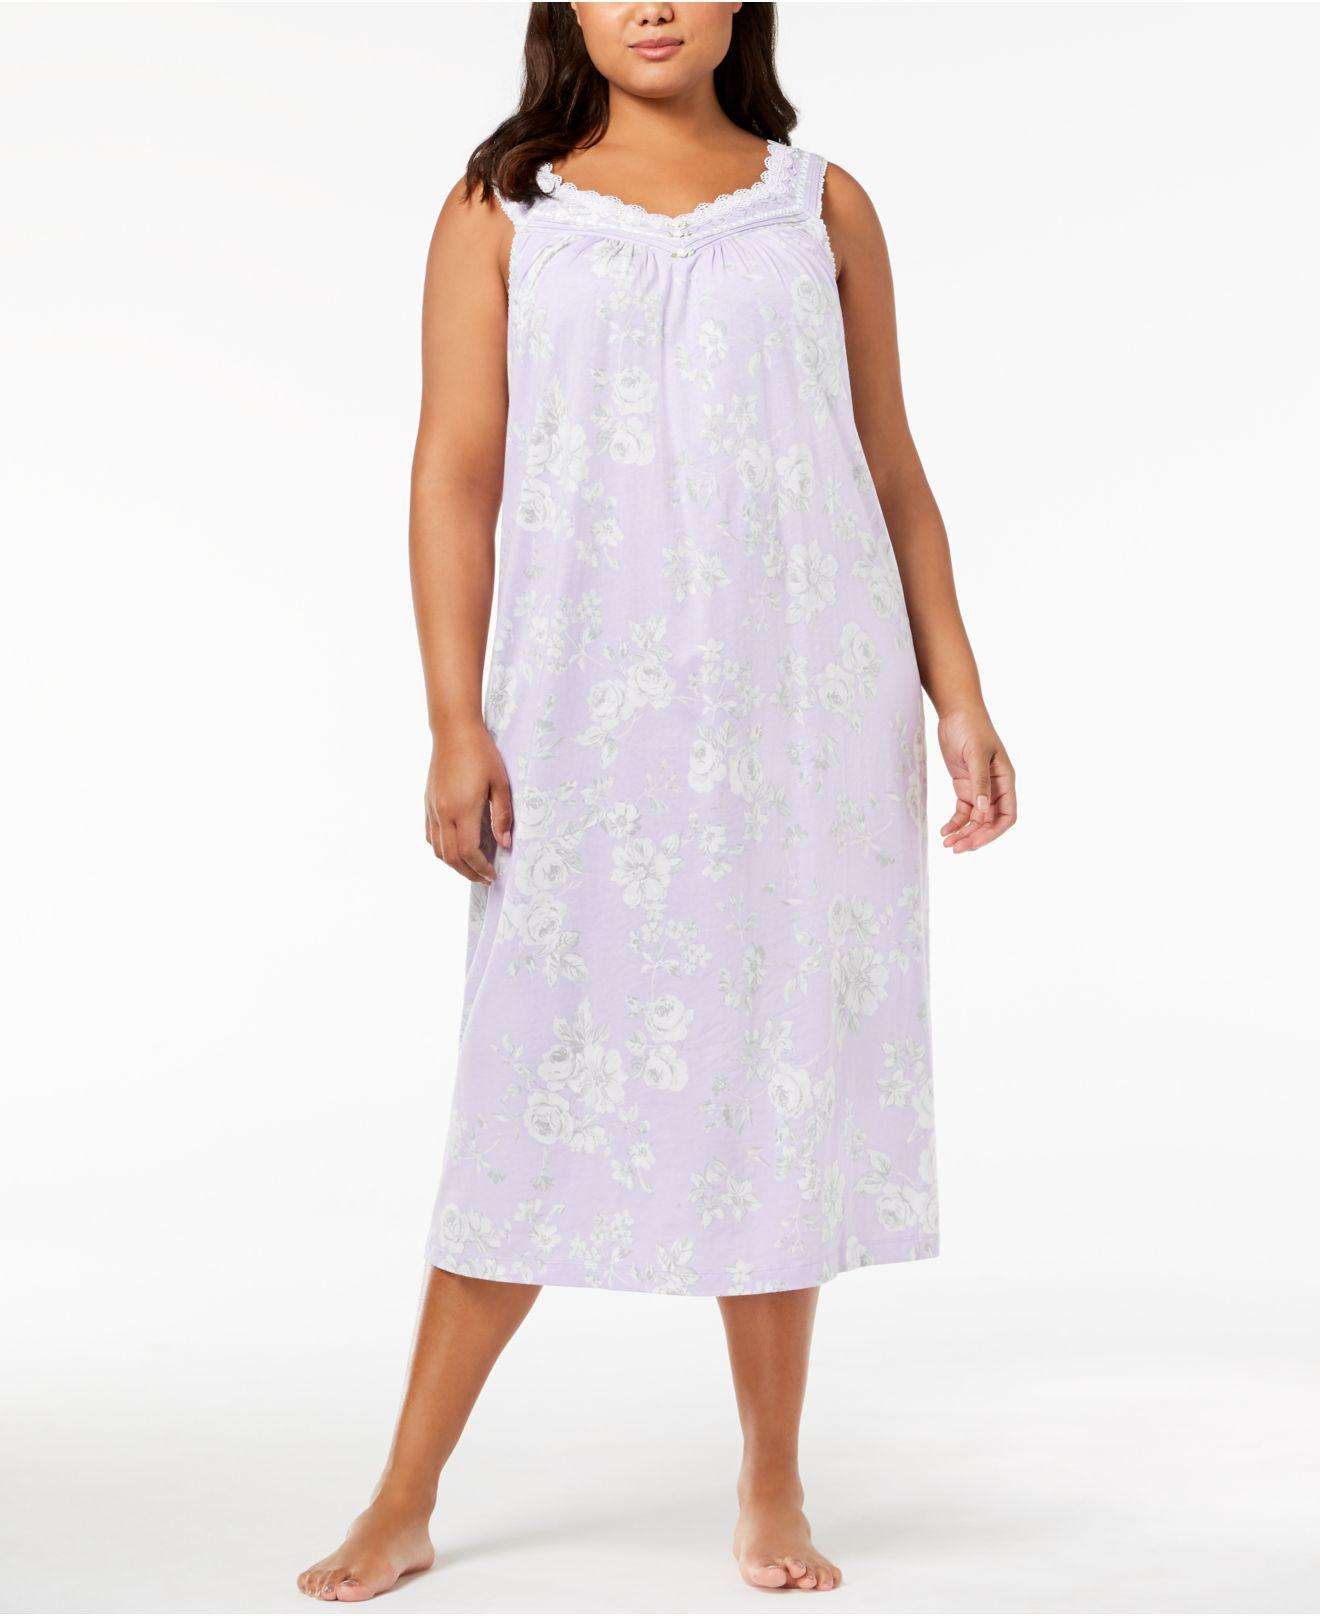 Lyst - Charter Club Plus Size Lace-trim Cotton Nightgown, Created ...